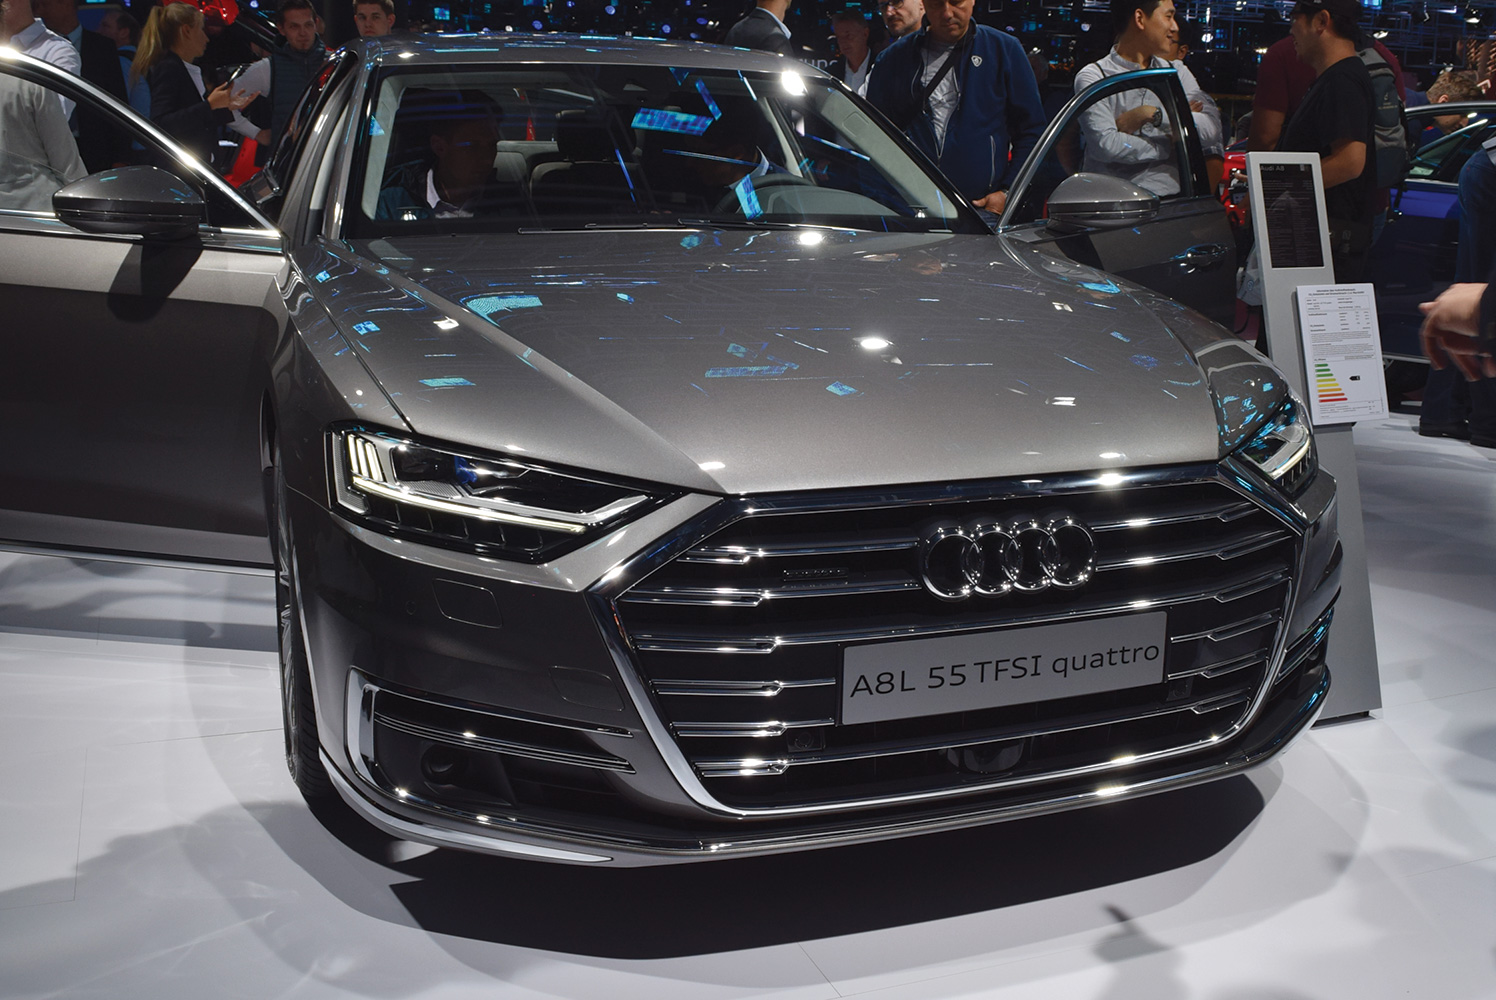 The Audi A8 at the Frankfurt Motor Show